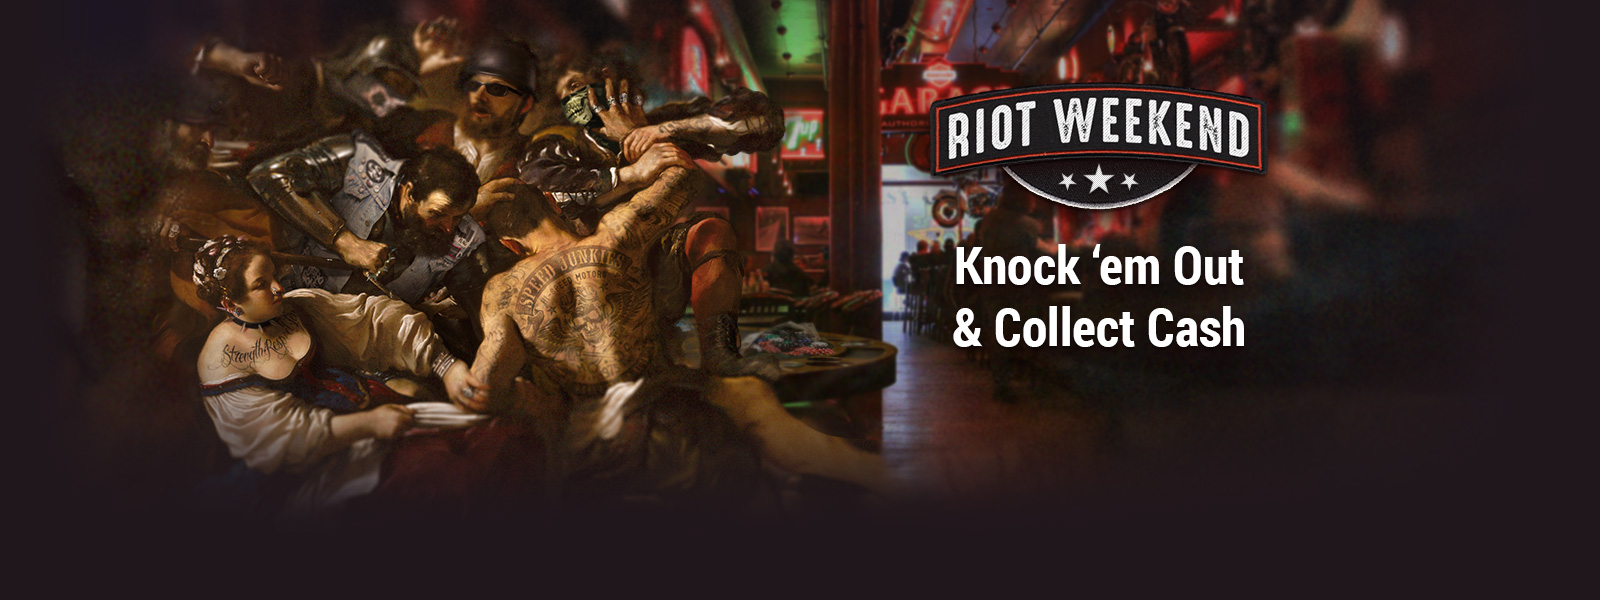 Riot Weekend – Fight & Cash In